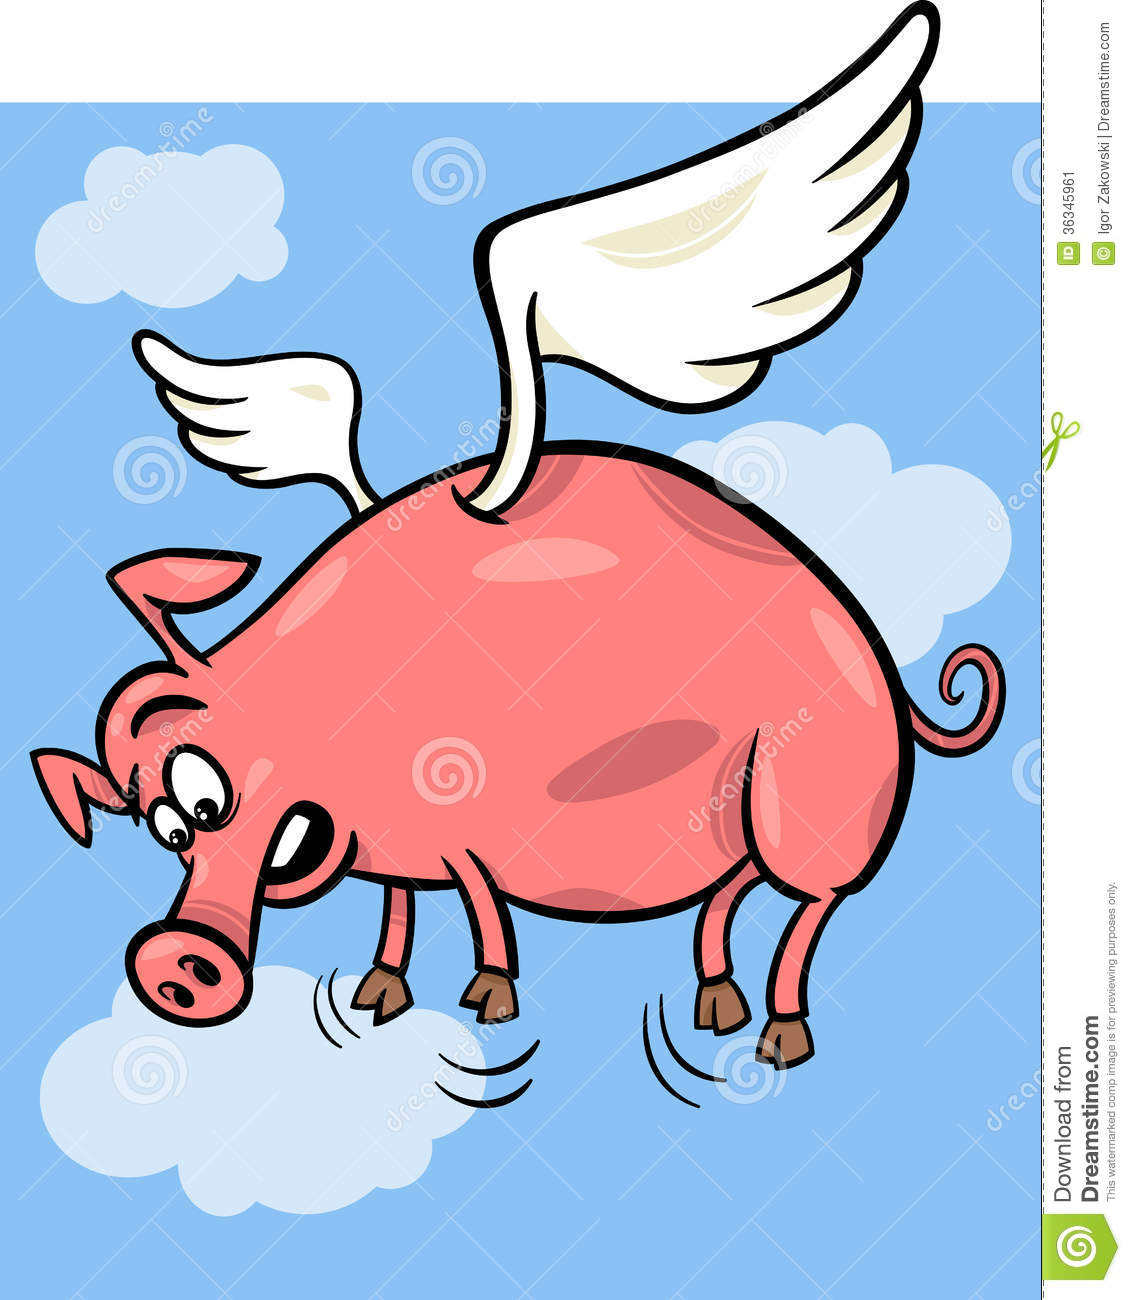 When Pigs Fly Cartoon Illustration Stock Image - Image: 36345961